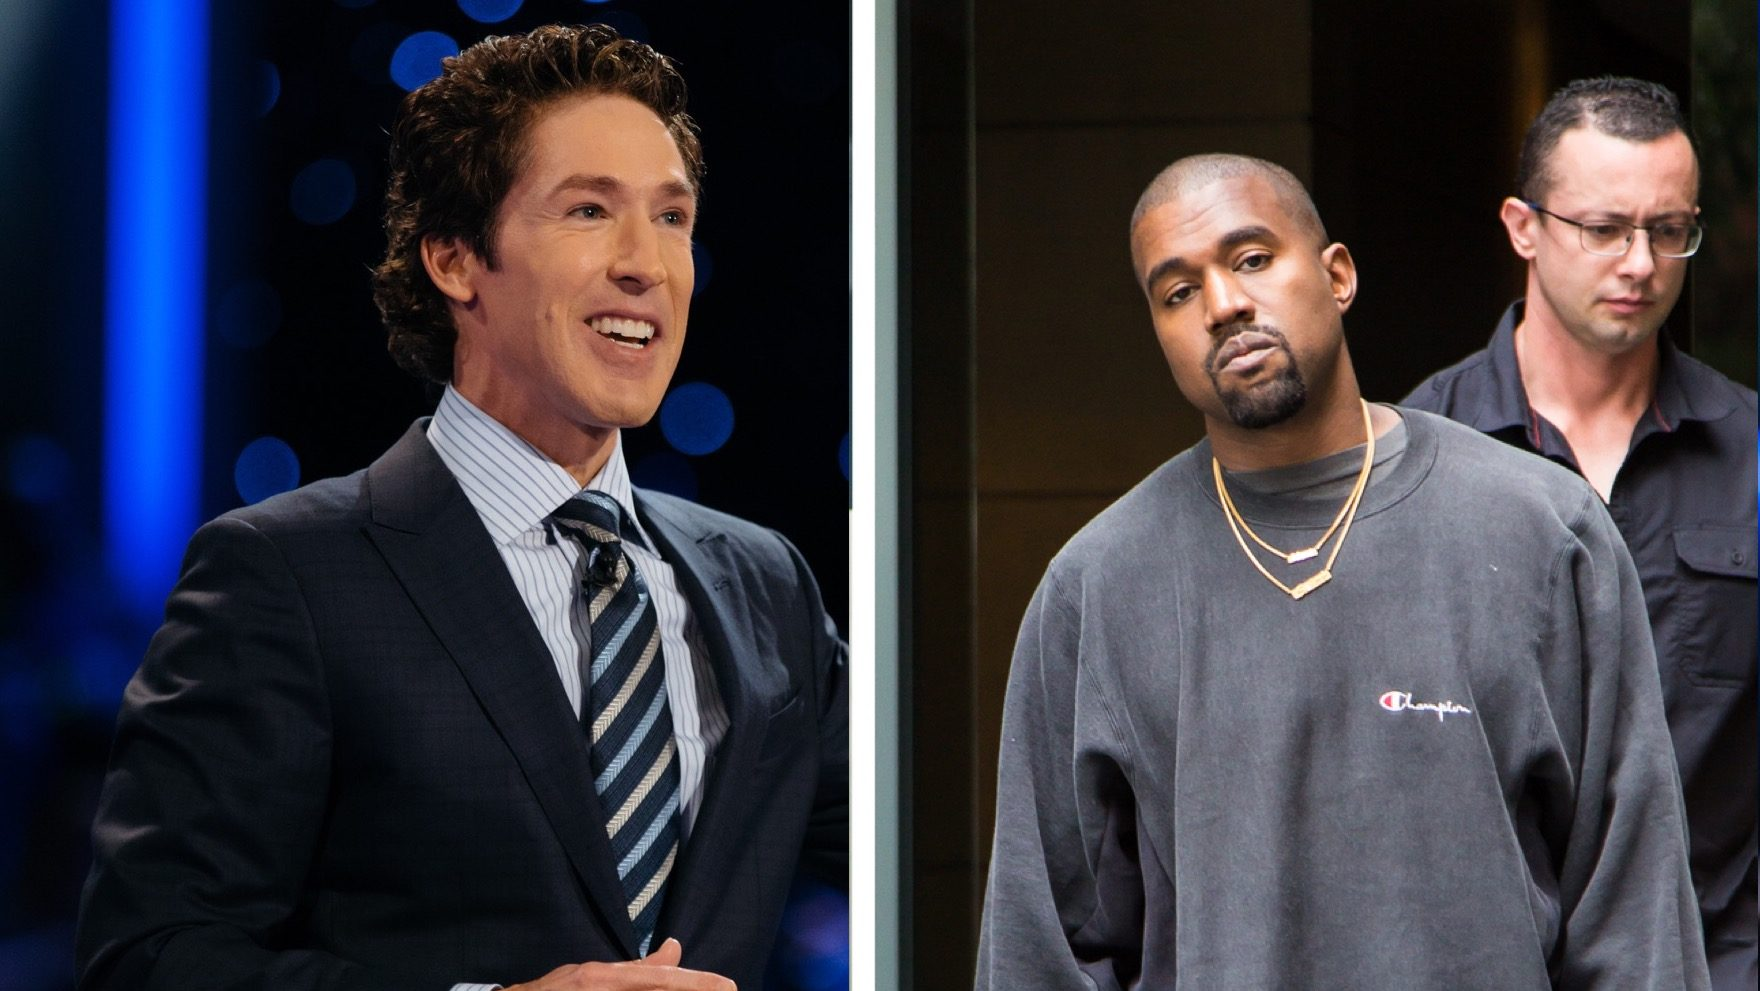 kanye west to appear at Joel Osteen church